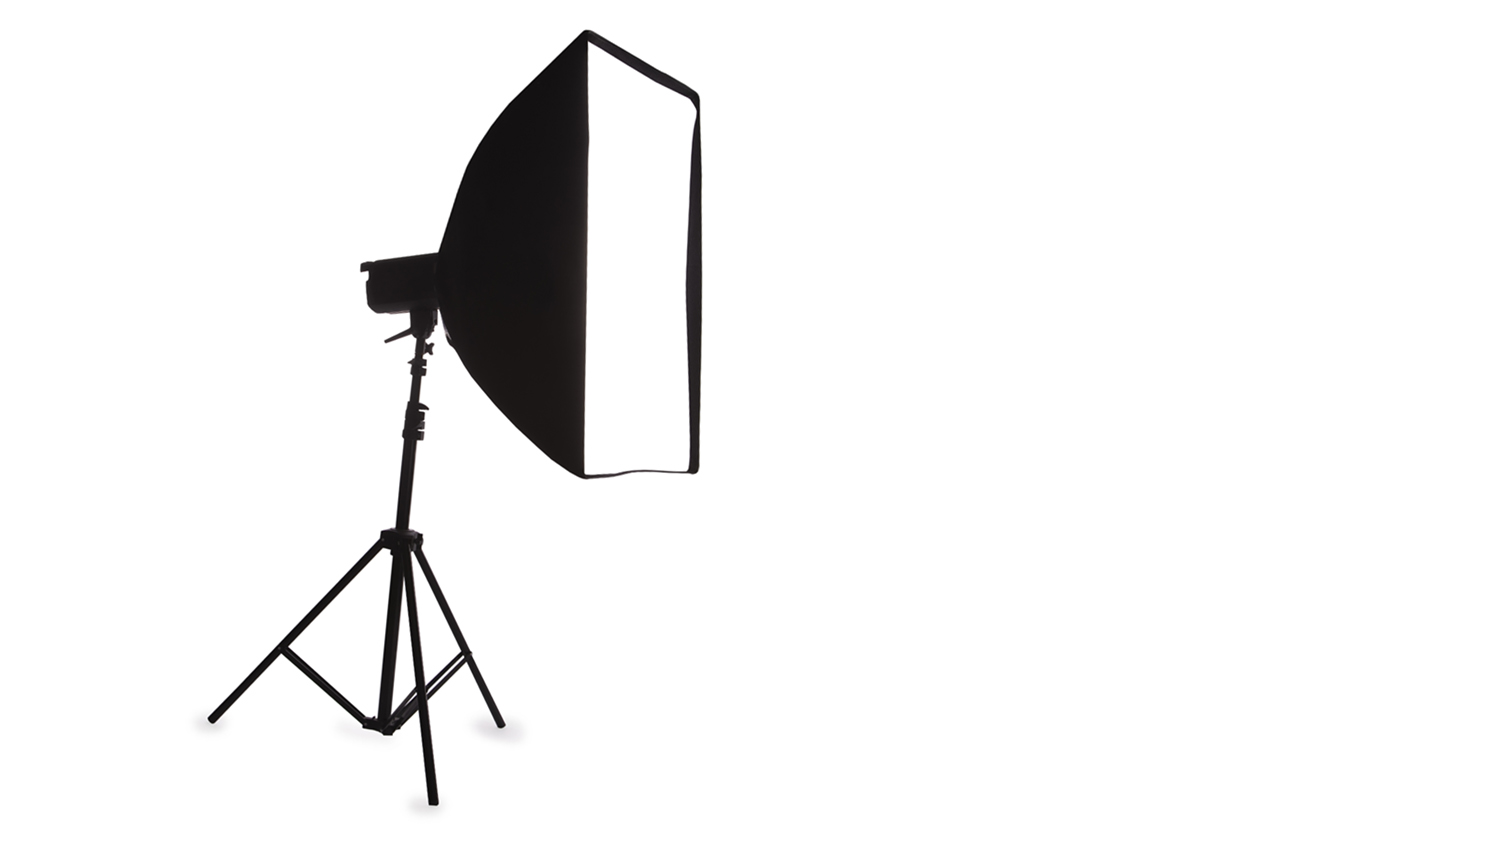 Lighting Soft Box - Soft Light Web Conferencing Tips